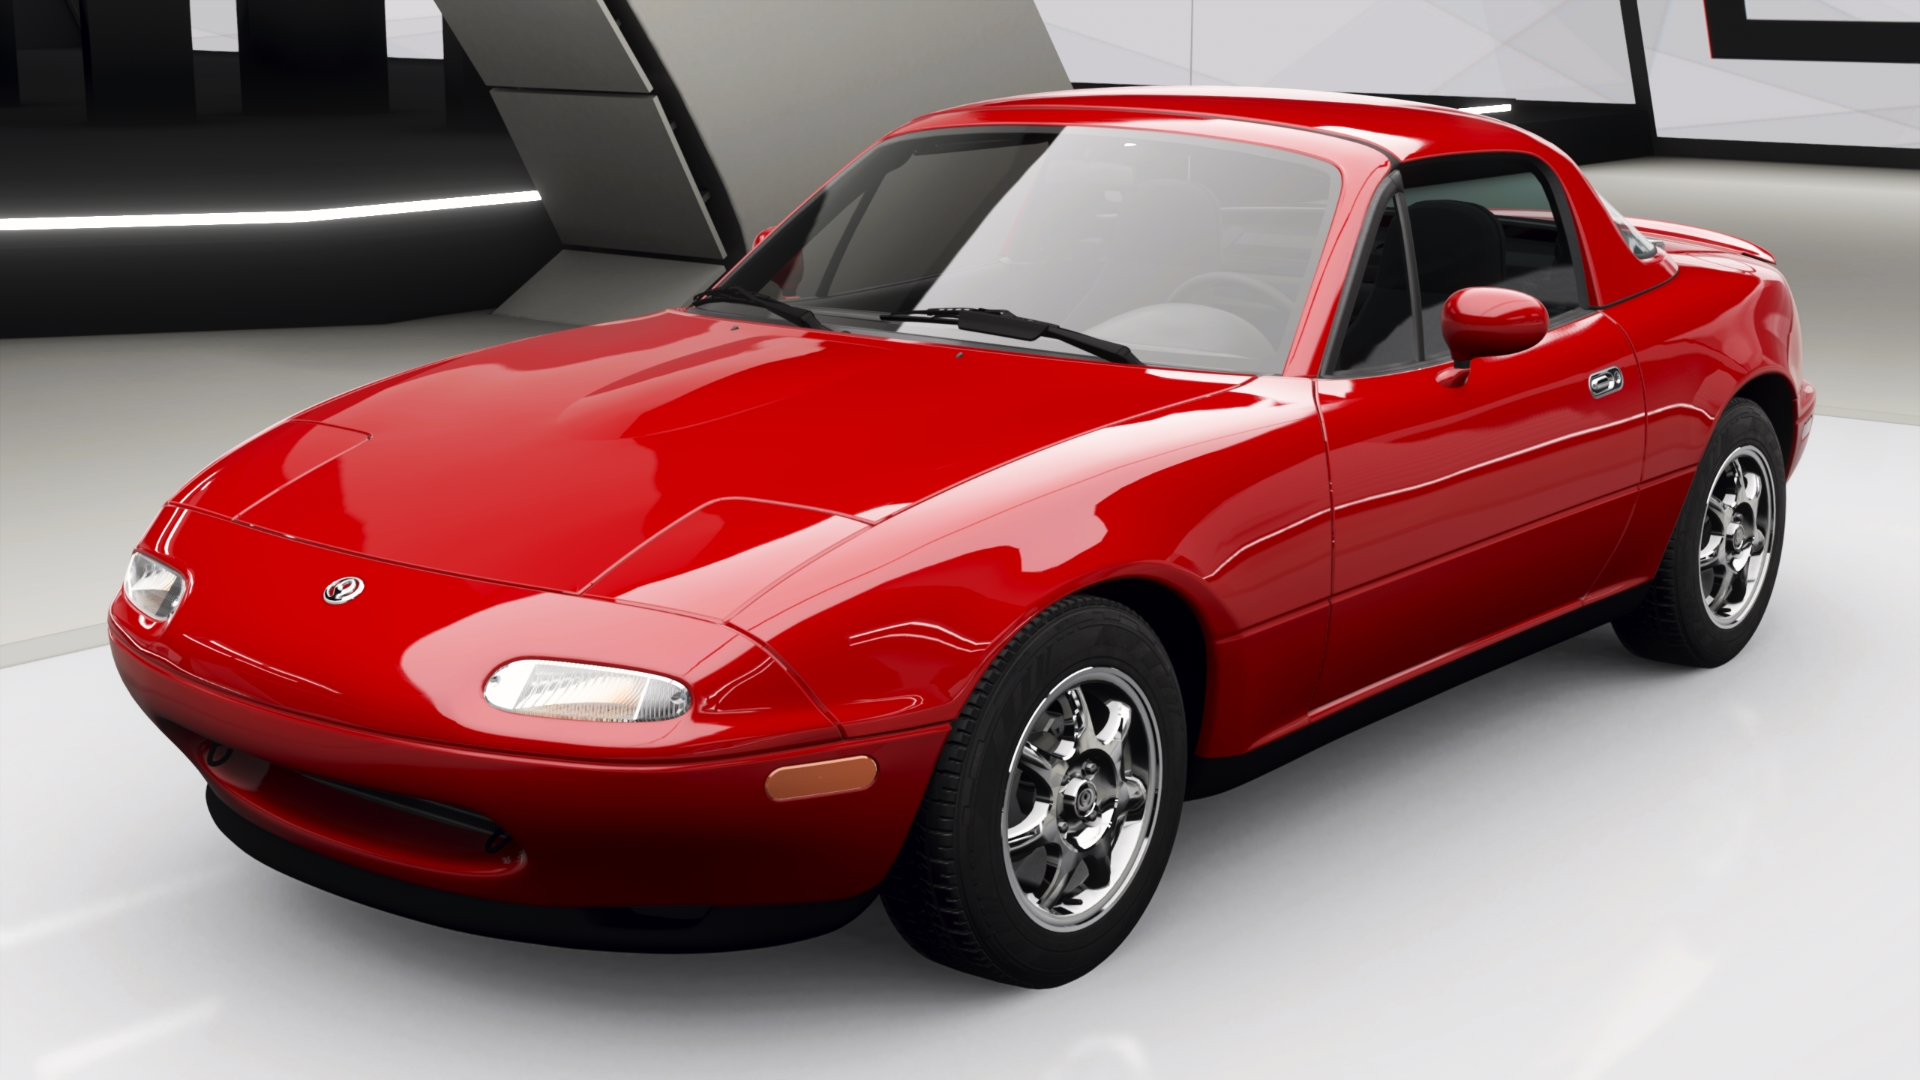 Mazda MX-5 Miata (1994) | Forza Motorsport Wiki | FANDOM powered by